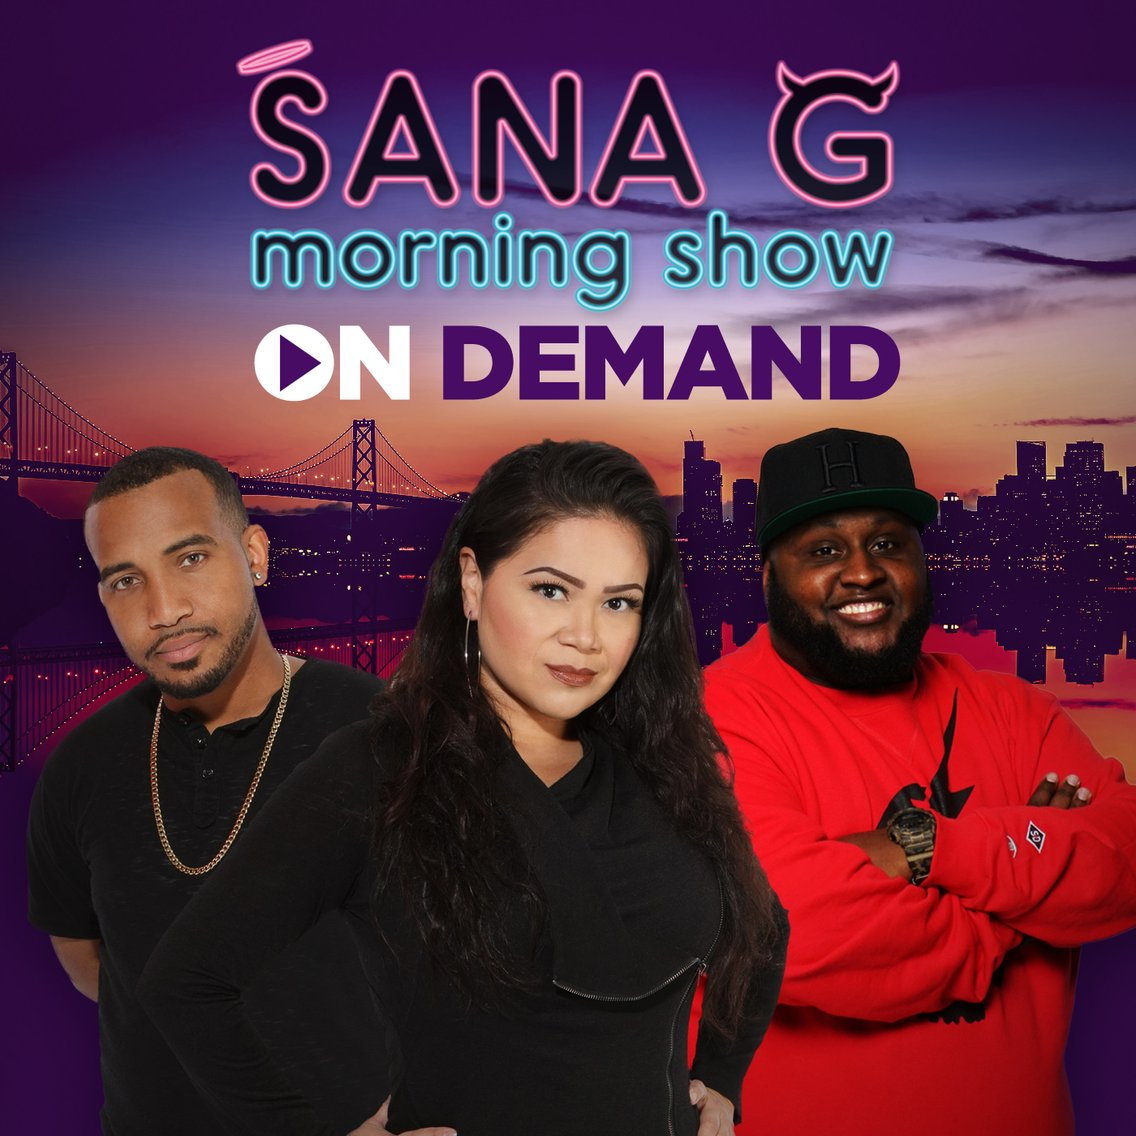 Sana G Morning Show On Demand - Cover Image